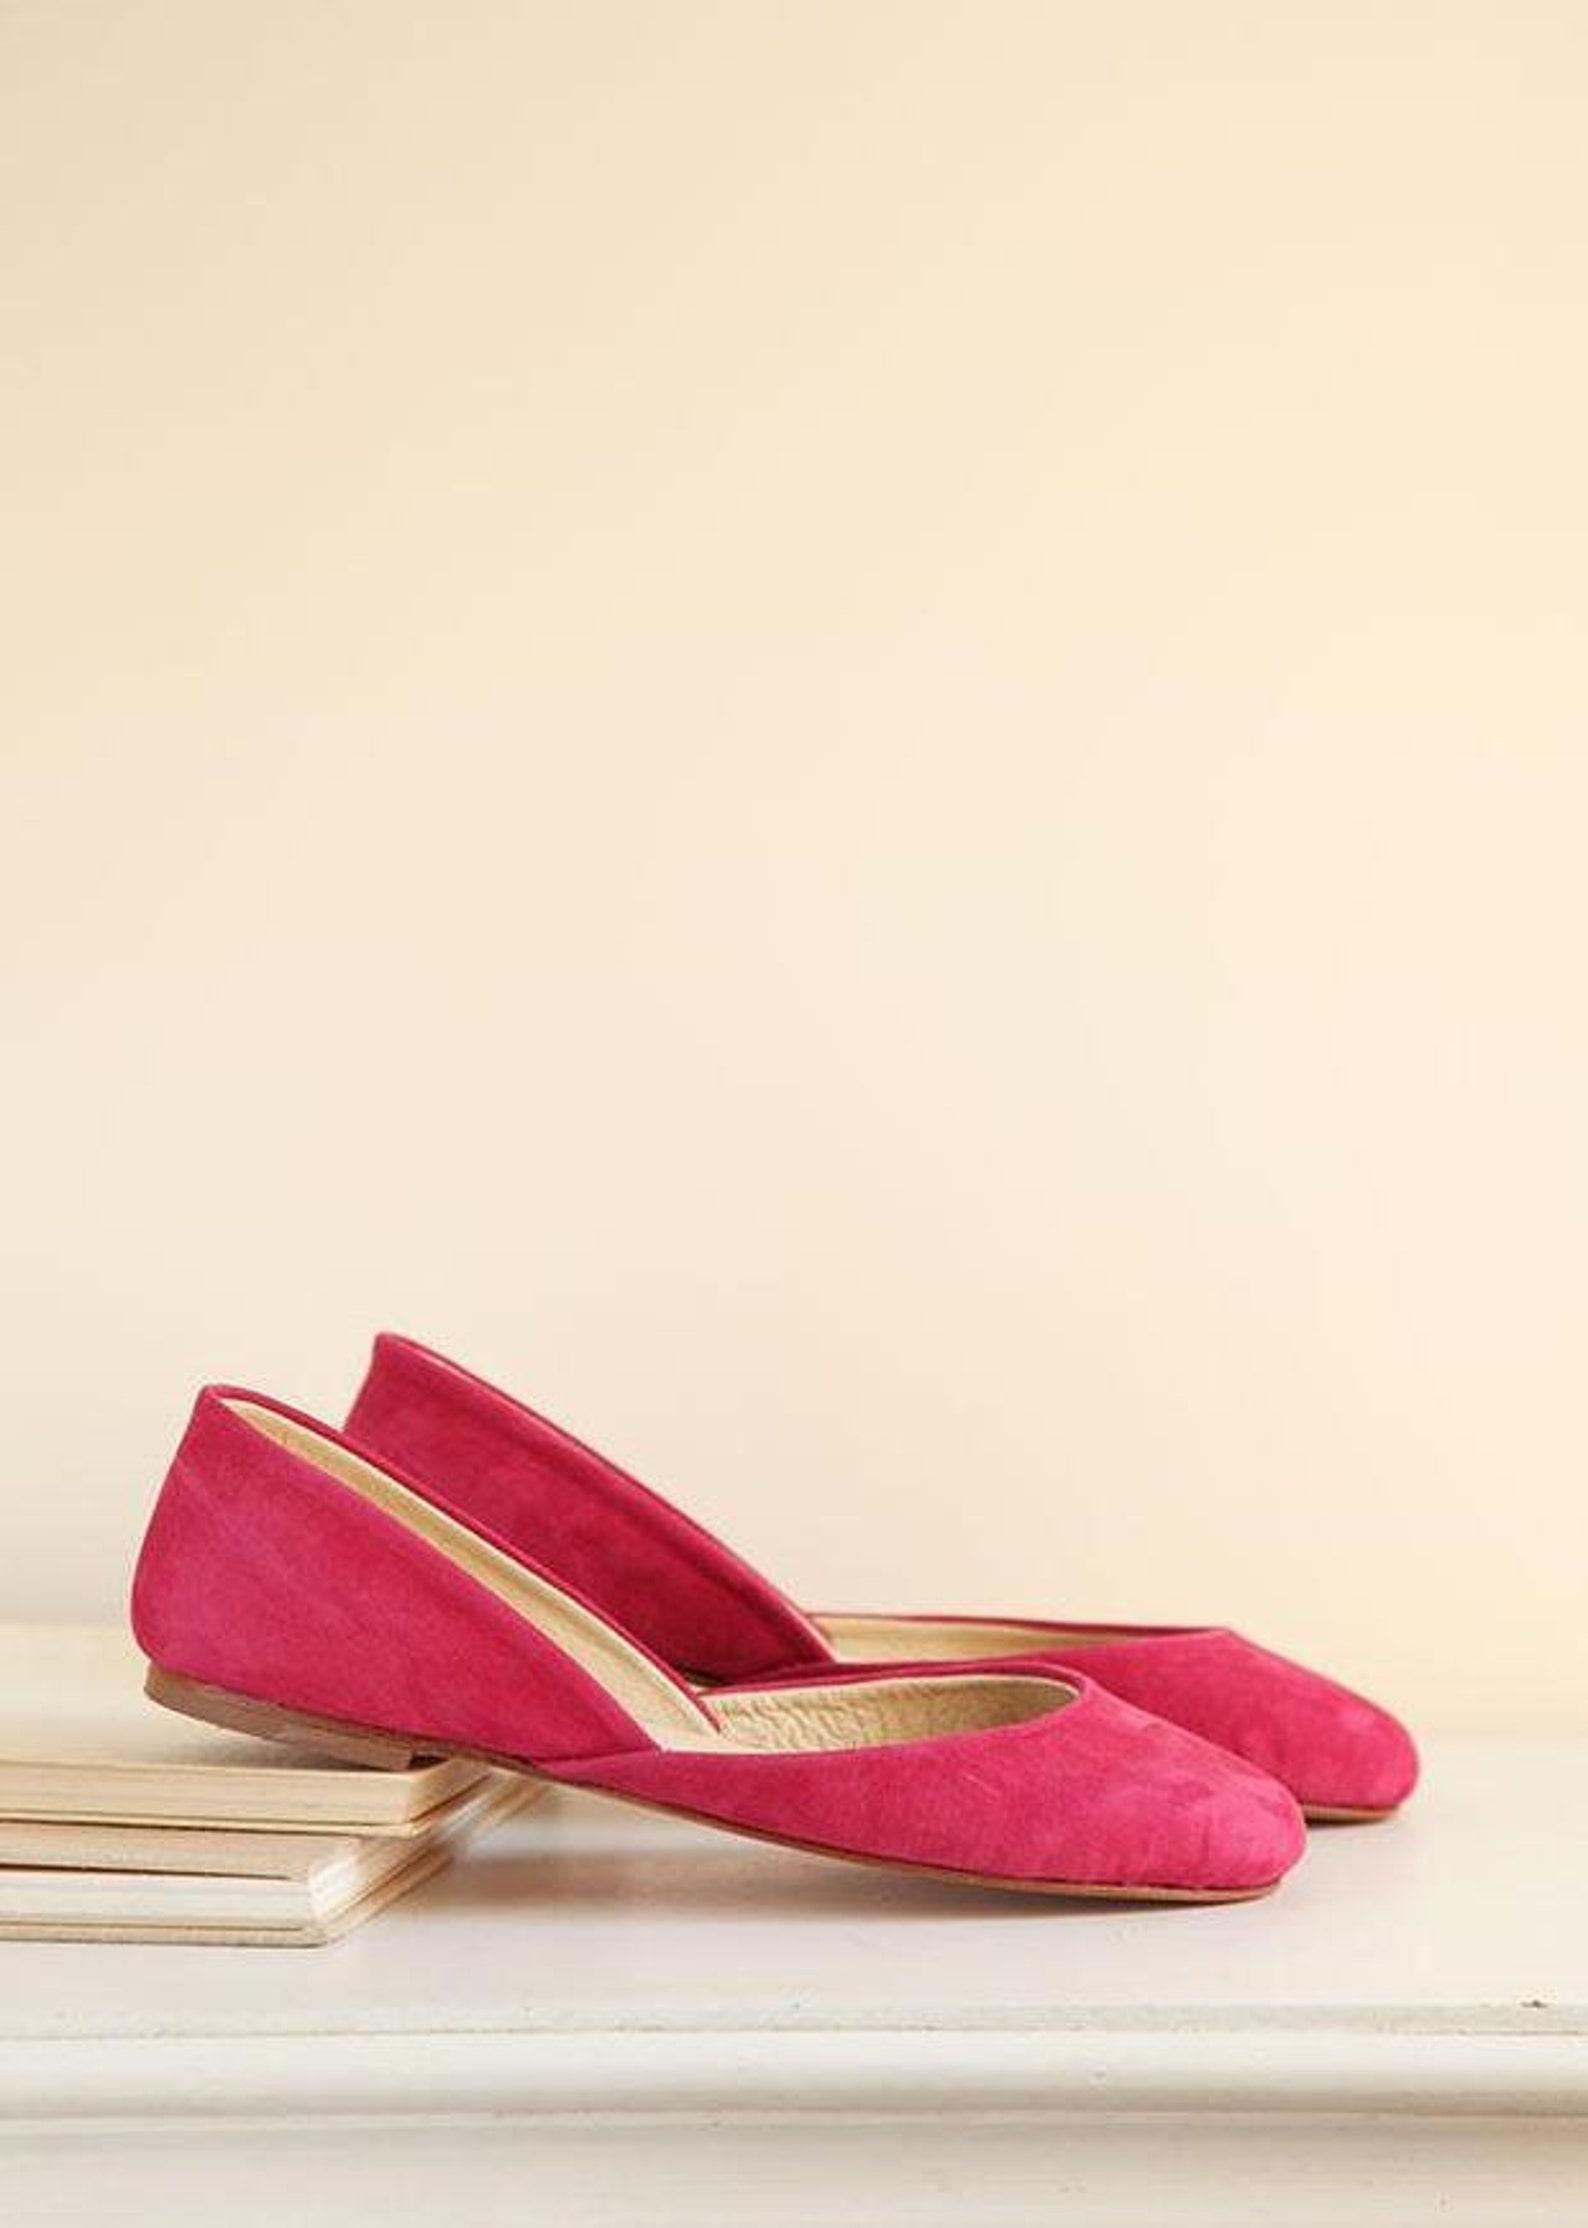 raspberry pink nubuck ballet flats | minimal shoes | pointe style shoes | classic model | standard width | raspberry suede | rea